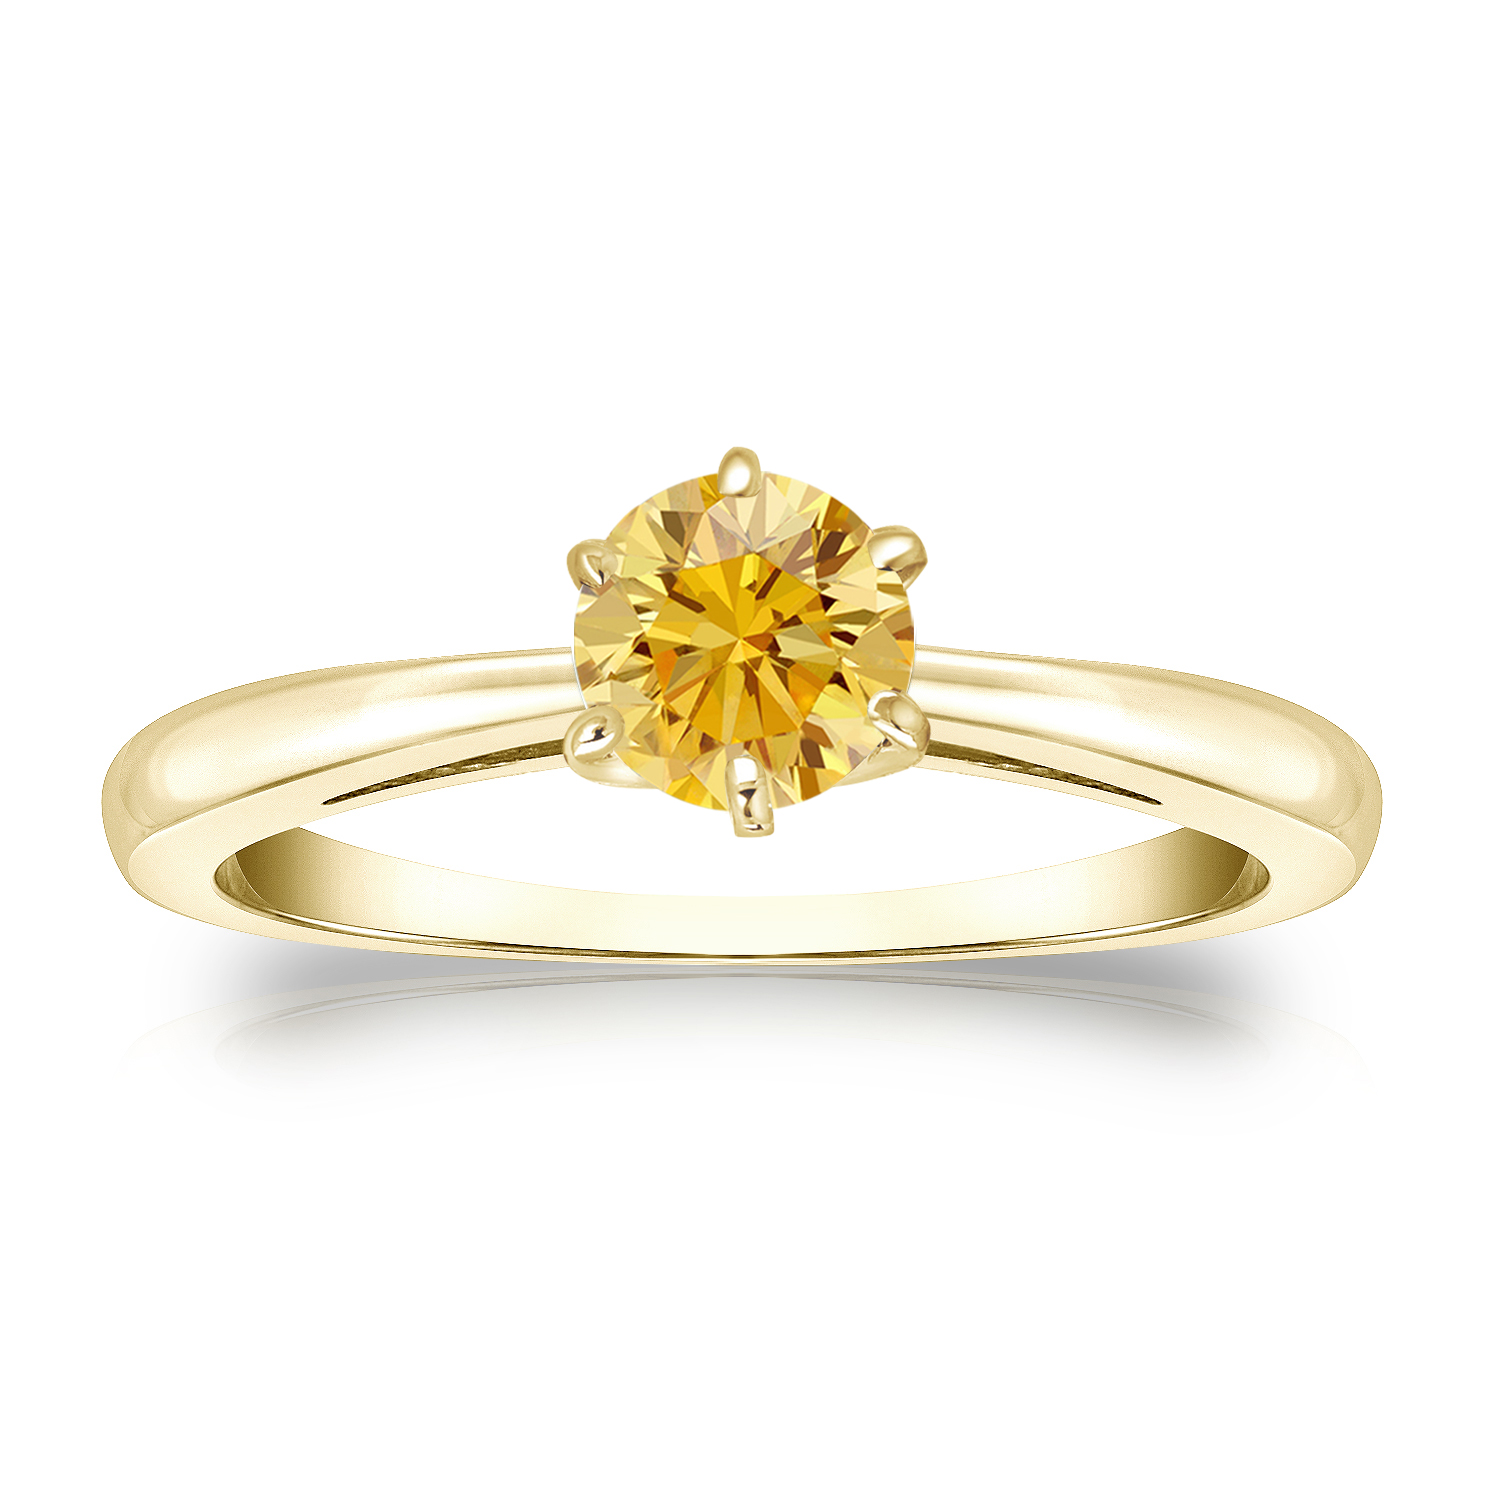 1/2 CT YELLOW DIAMOND ENGAGEMENT RING 14K YELLOW GOLD